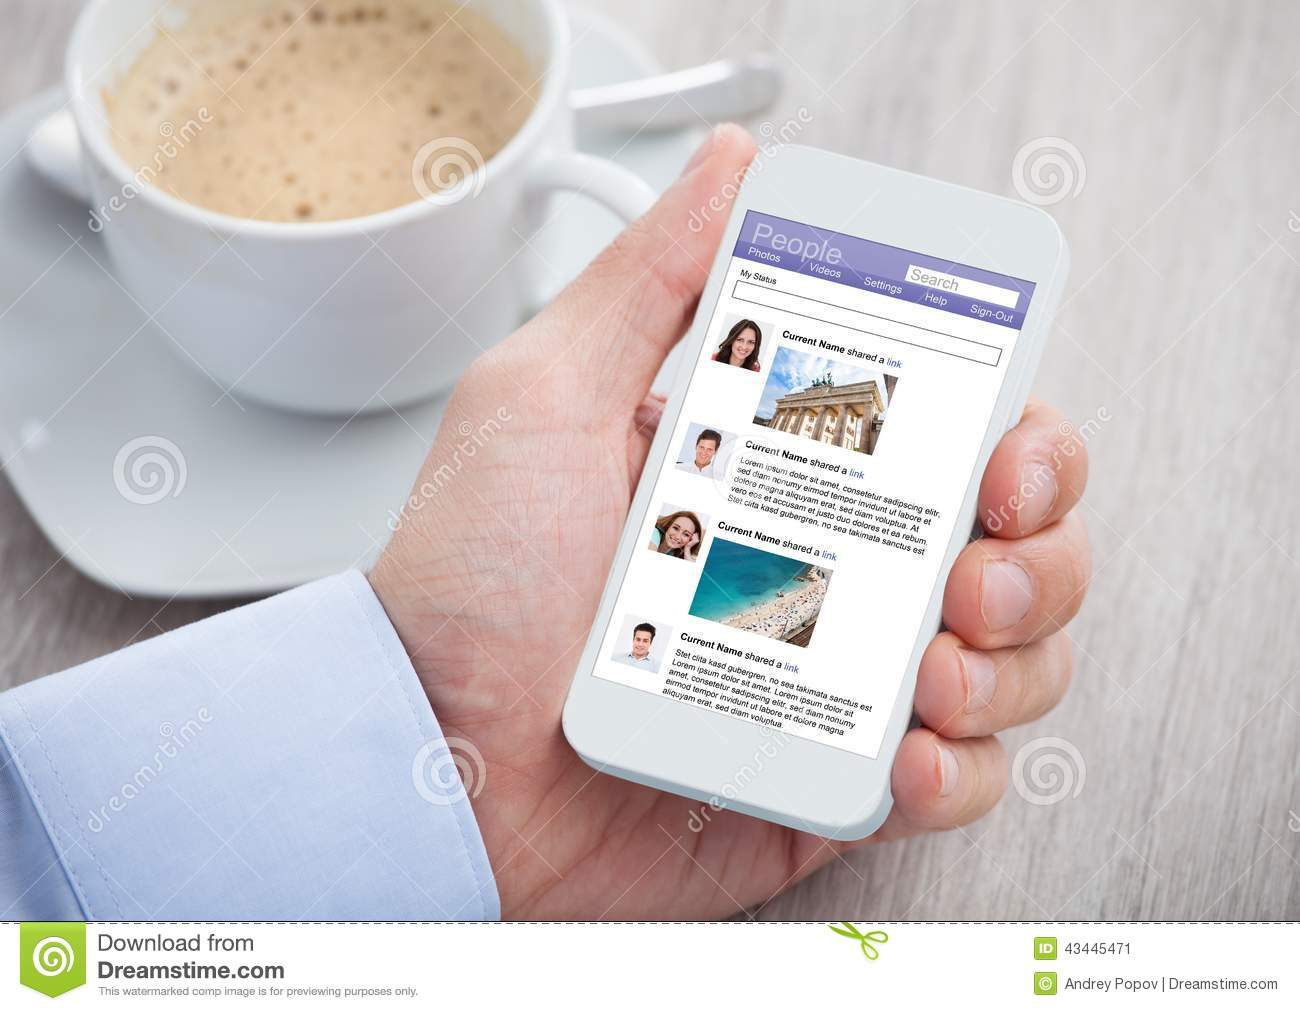 Businessman surfing social networking site on mobilephone